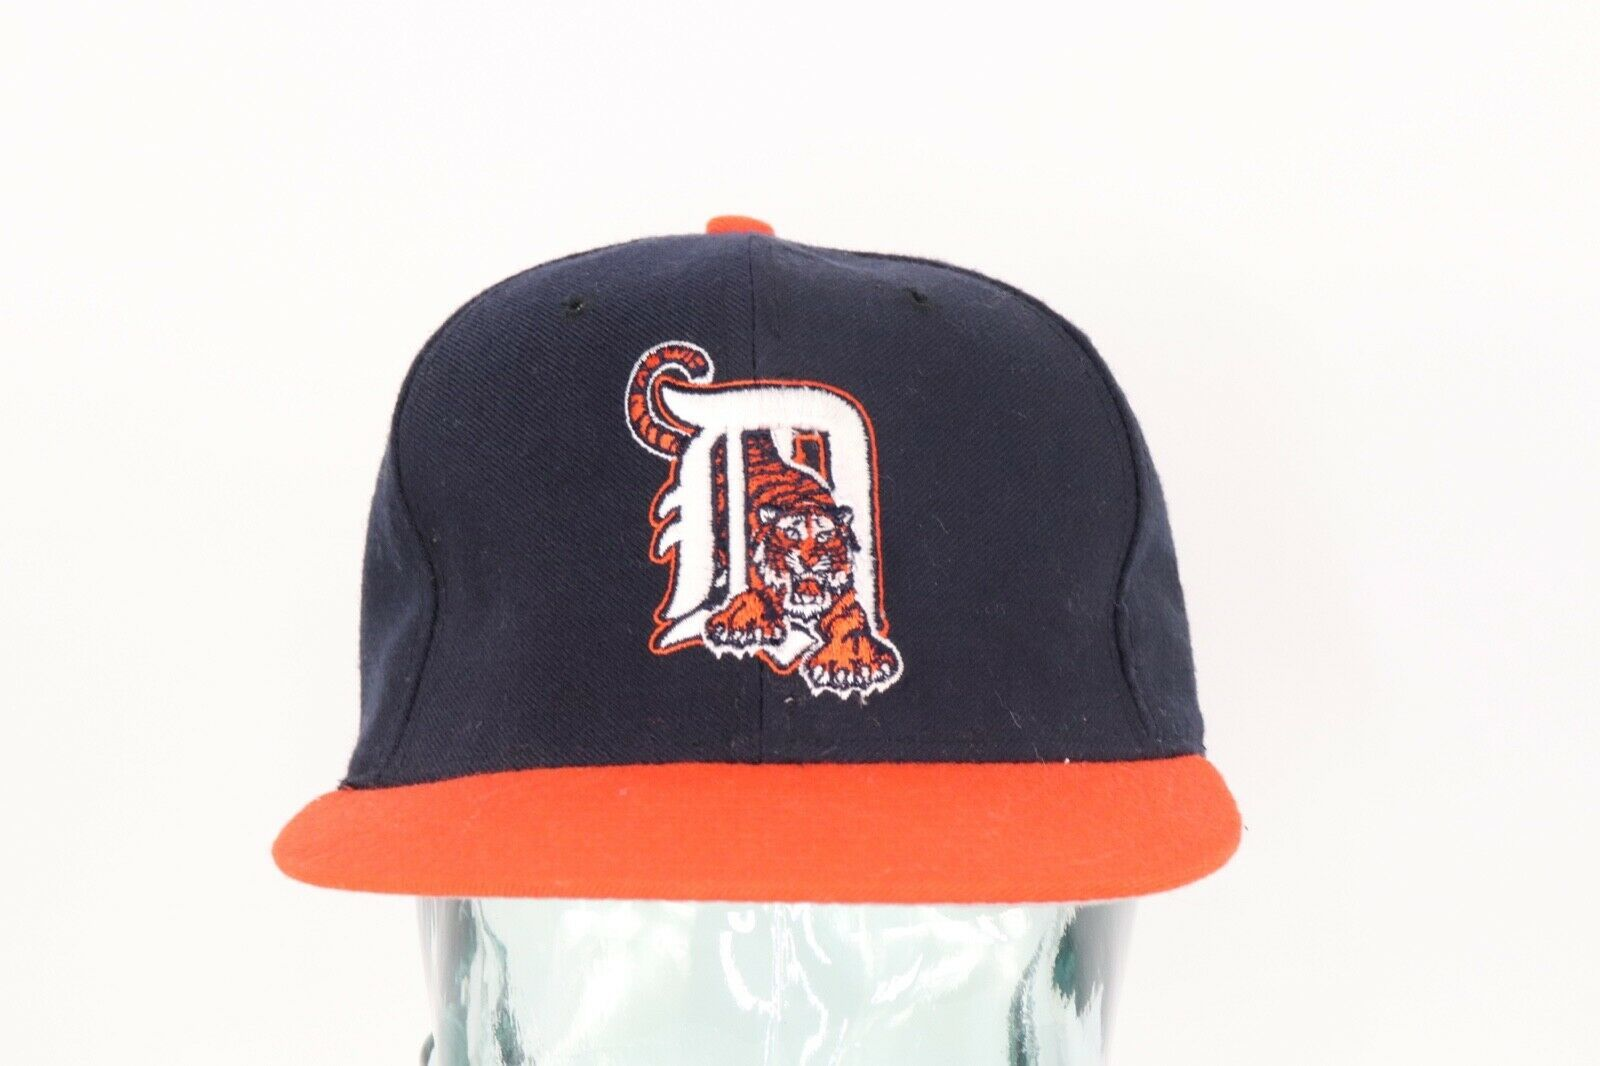 Primary image for Vintage 90s New Era Diamond Collection Detroit Tigers Fitted Baseball Hat 6 7/8